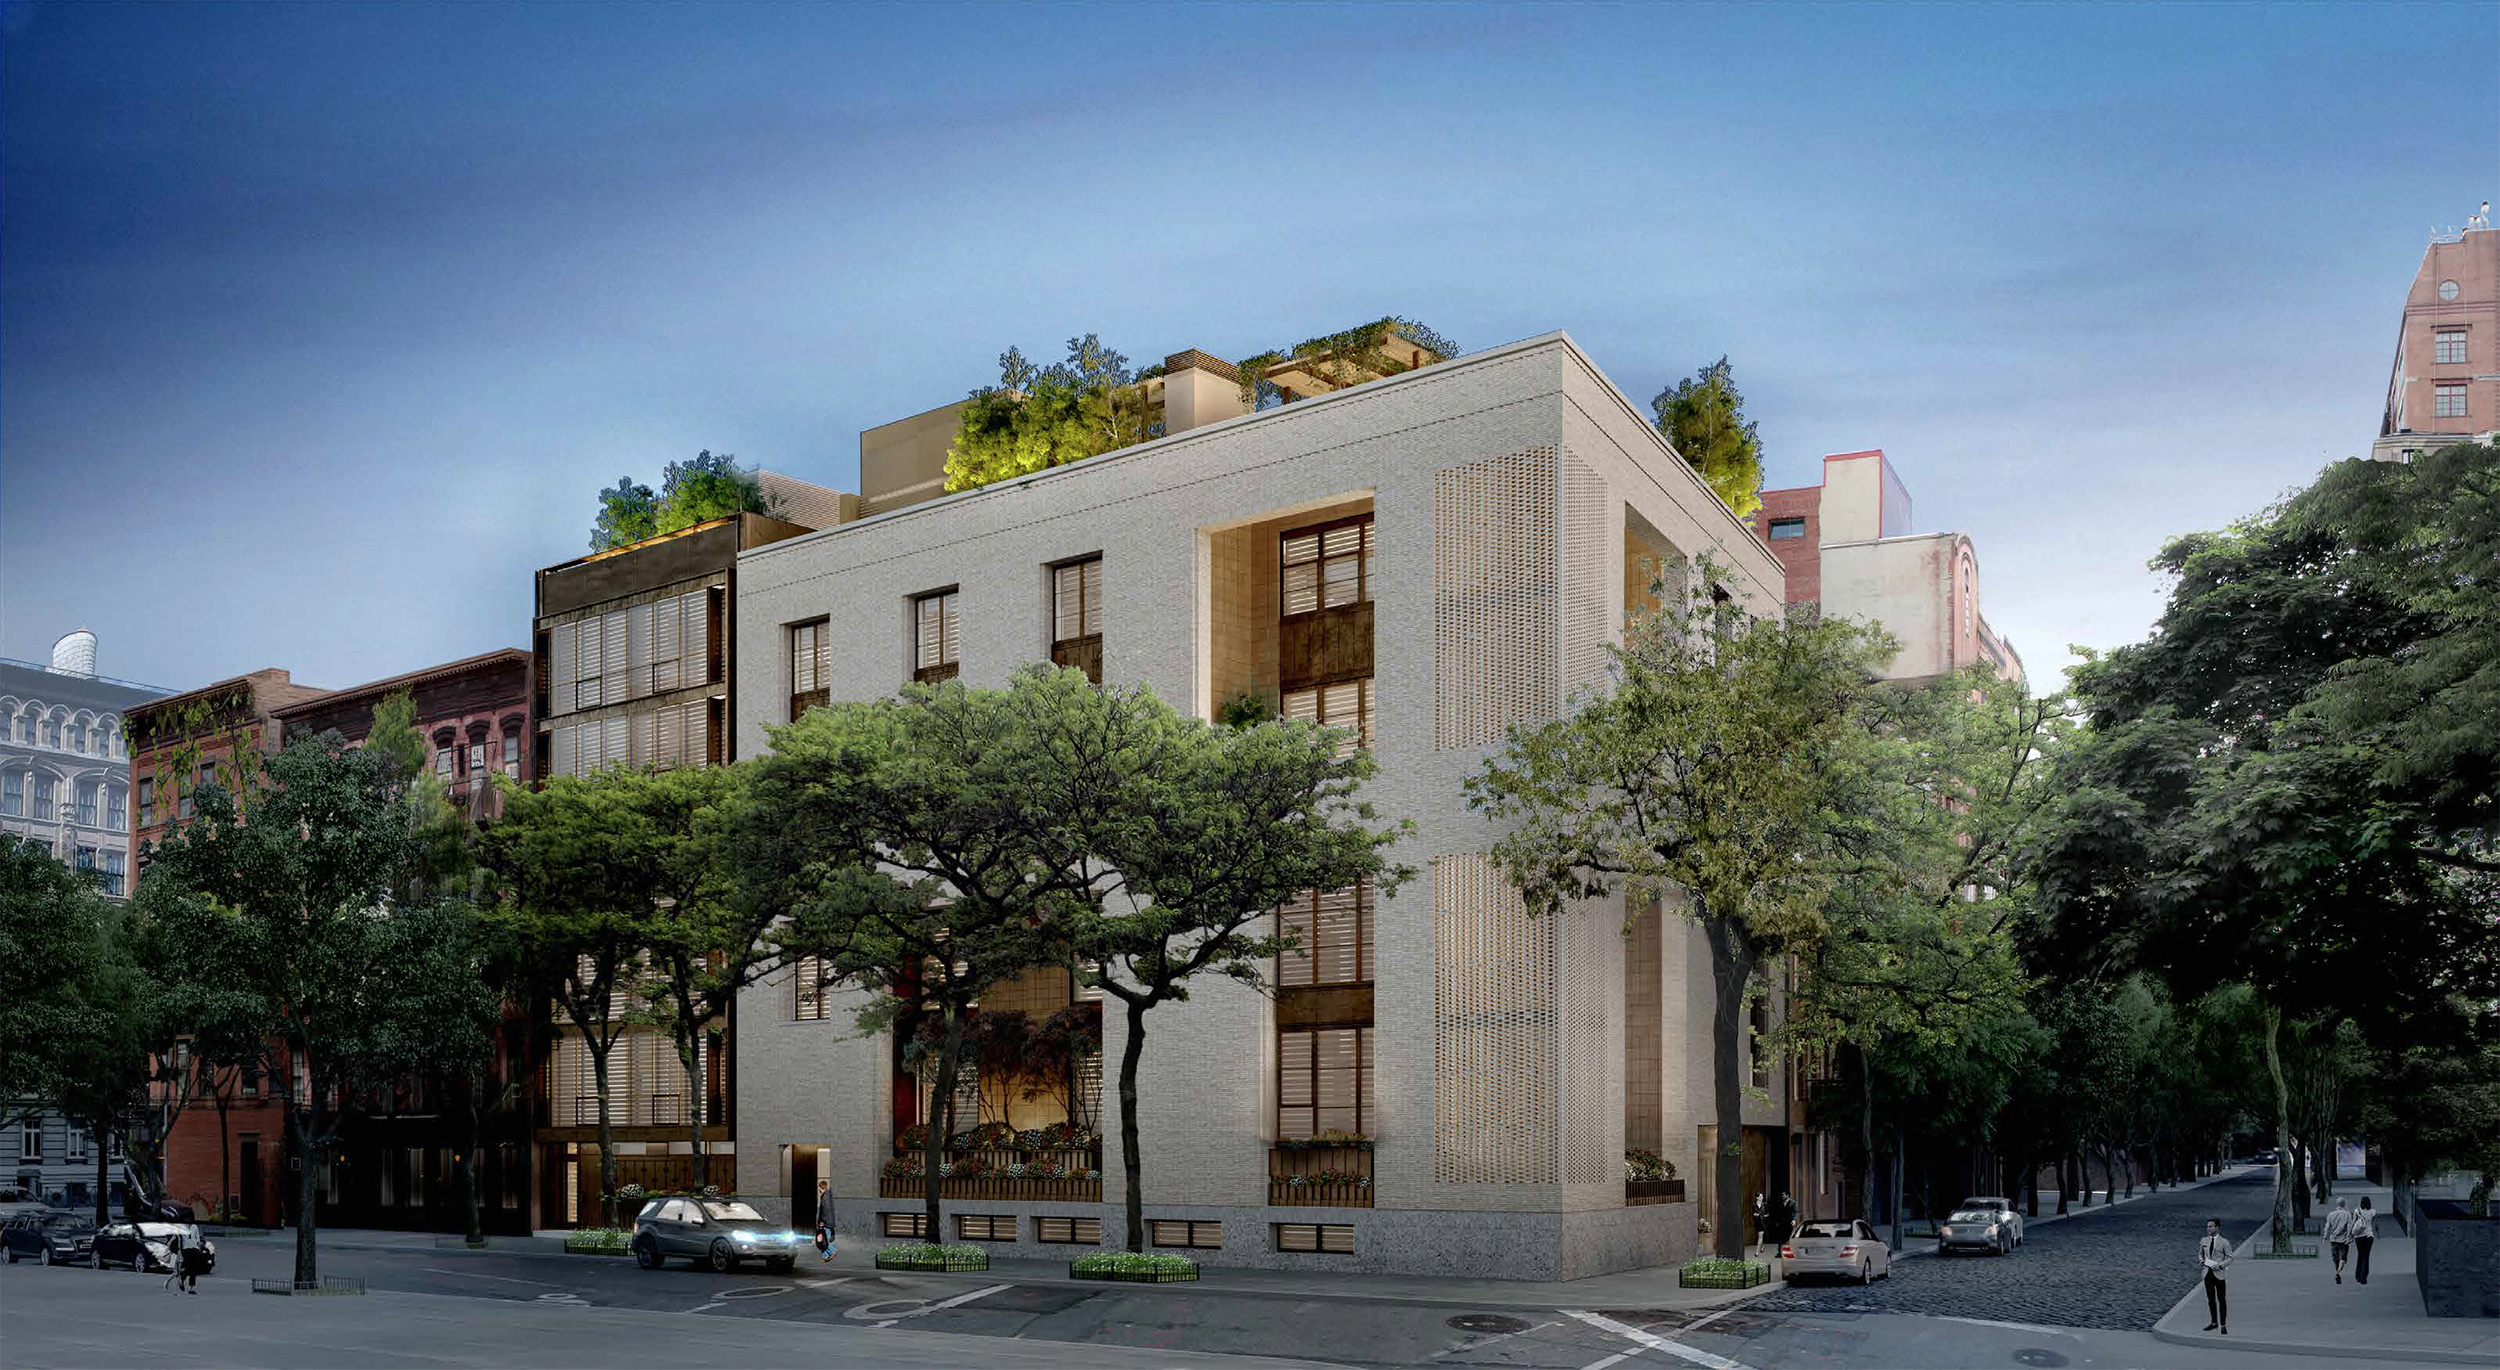 Proposal for 145 Perry Street, a.k.a. 703-711 Washington Street. The apartment building is to the left and the mega-mansion is to the right.